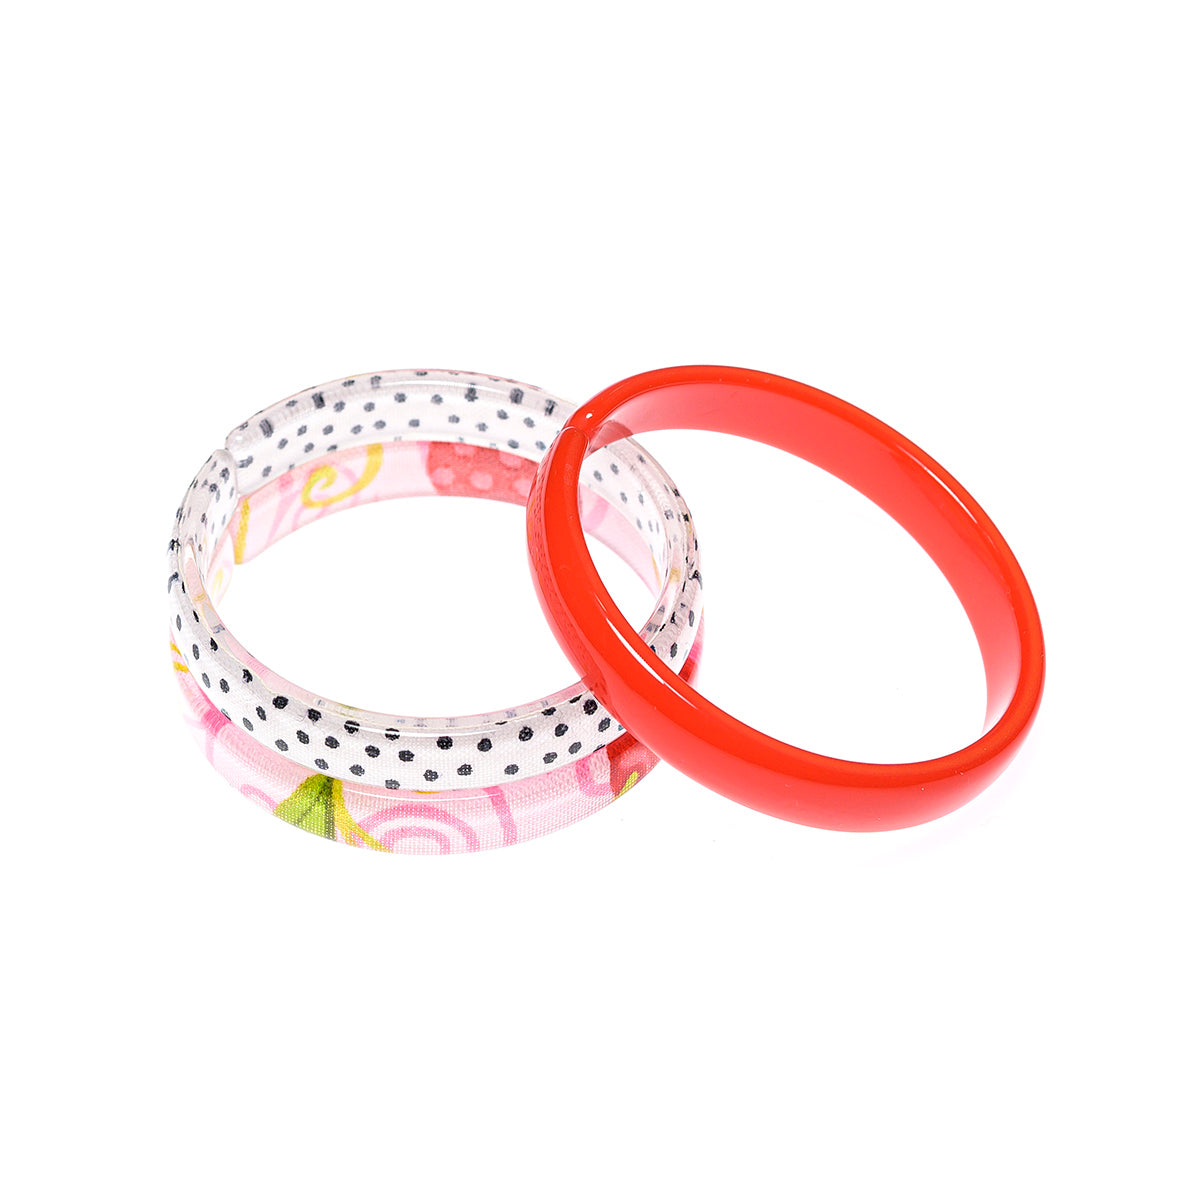 Bracelets Mix - Red + White w/ Black Dots + Pink Floral Print -  Lilies & Roses NY